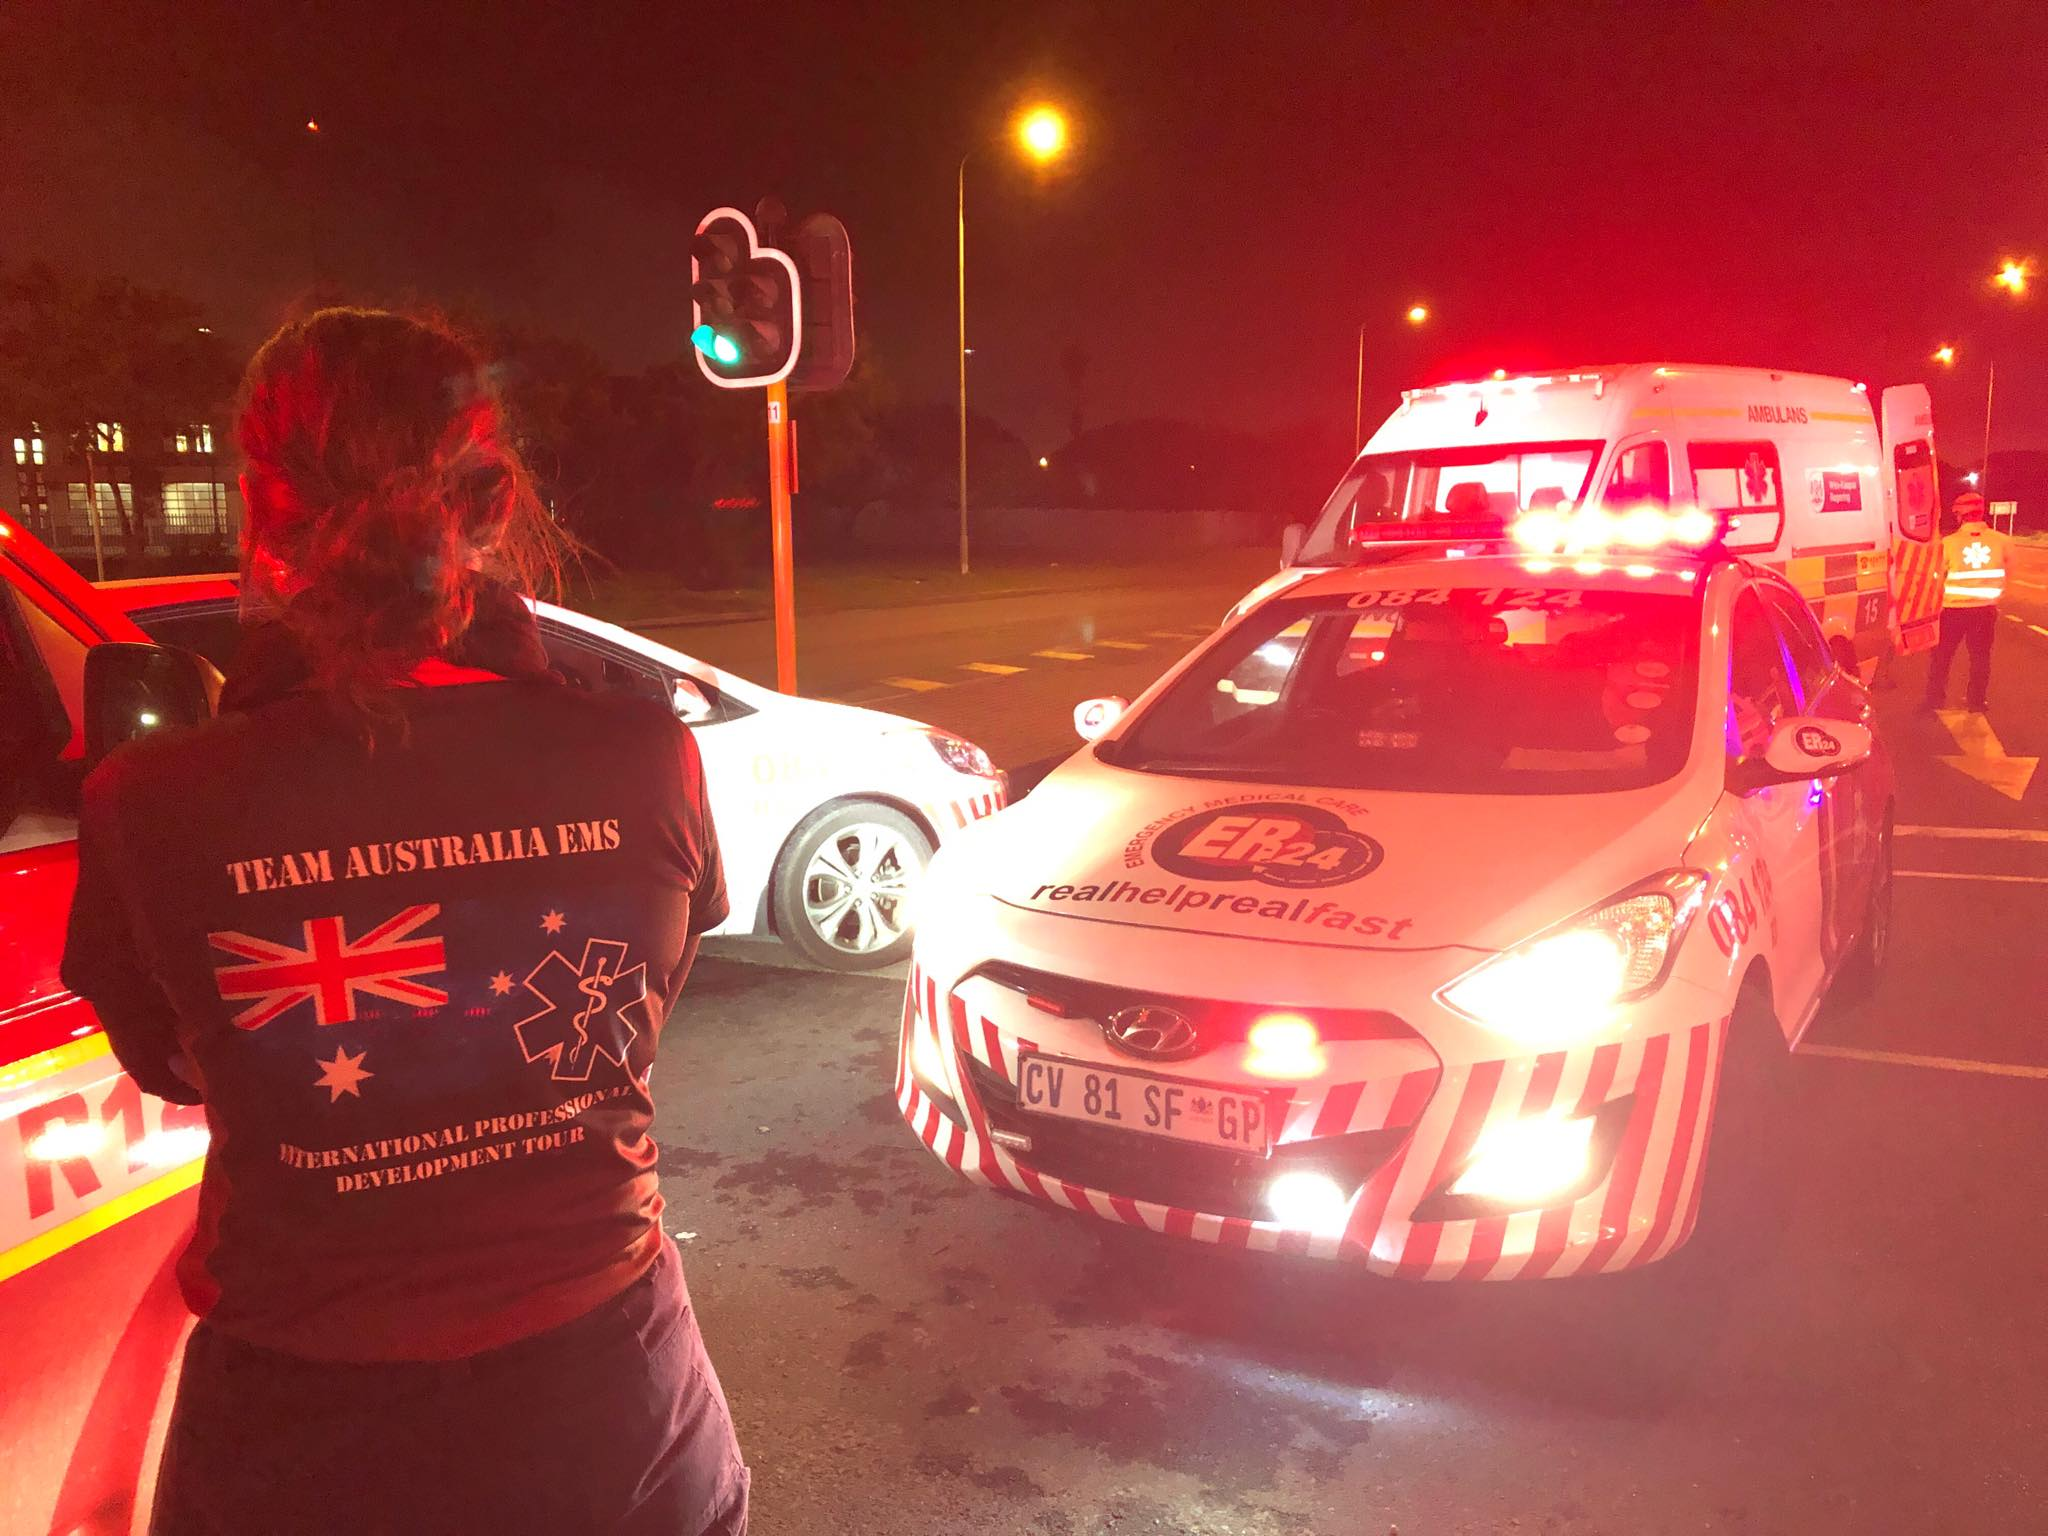 Team Australia EMS in South Africa